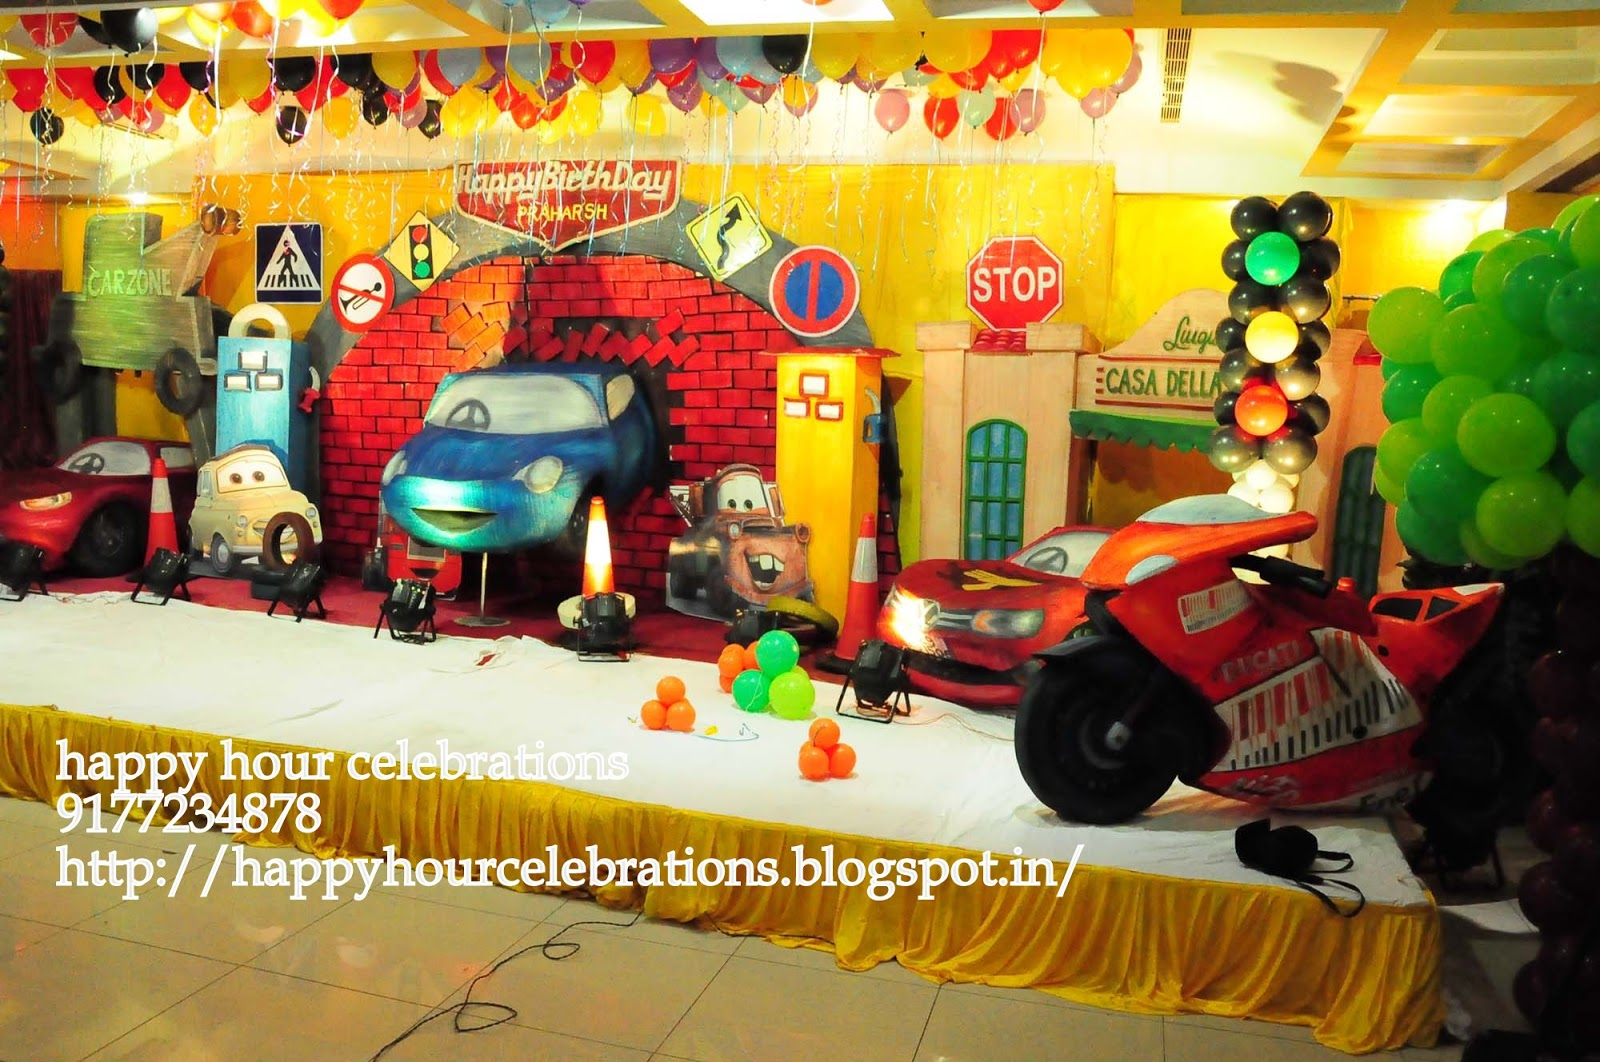 Happy Hour Celebrations has been designing and arranging events and parties  of all kinds and sizes  in hyderabad and outside hyderabad. Birthday party decorations Boys   Girls Themes   Birthday party